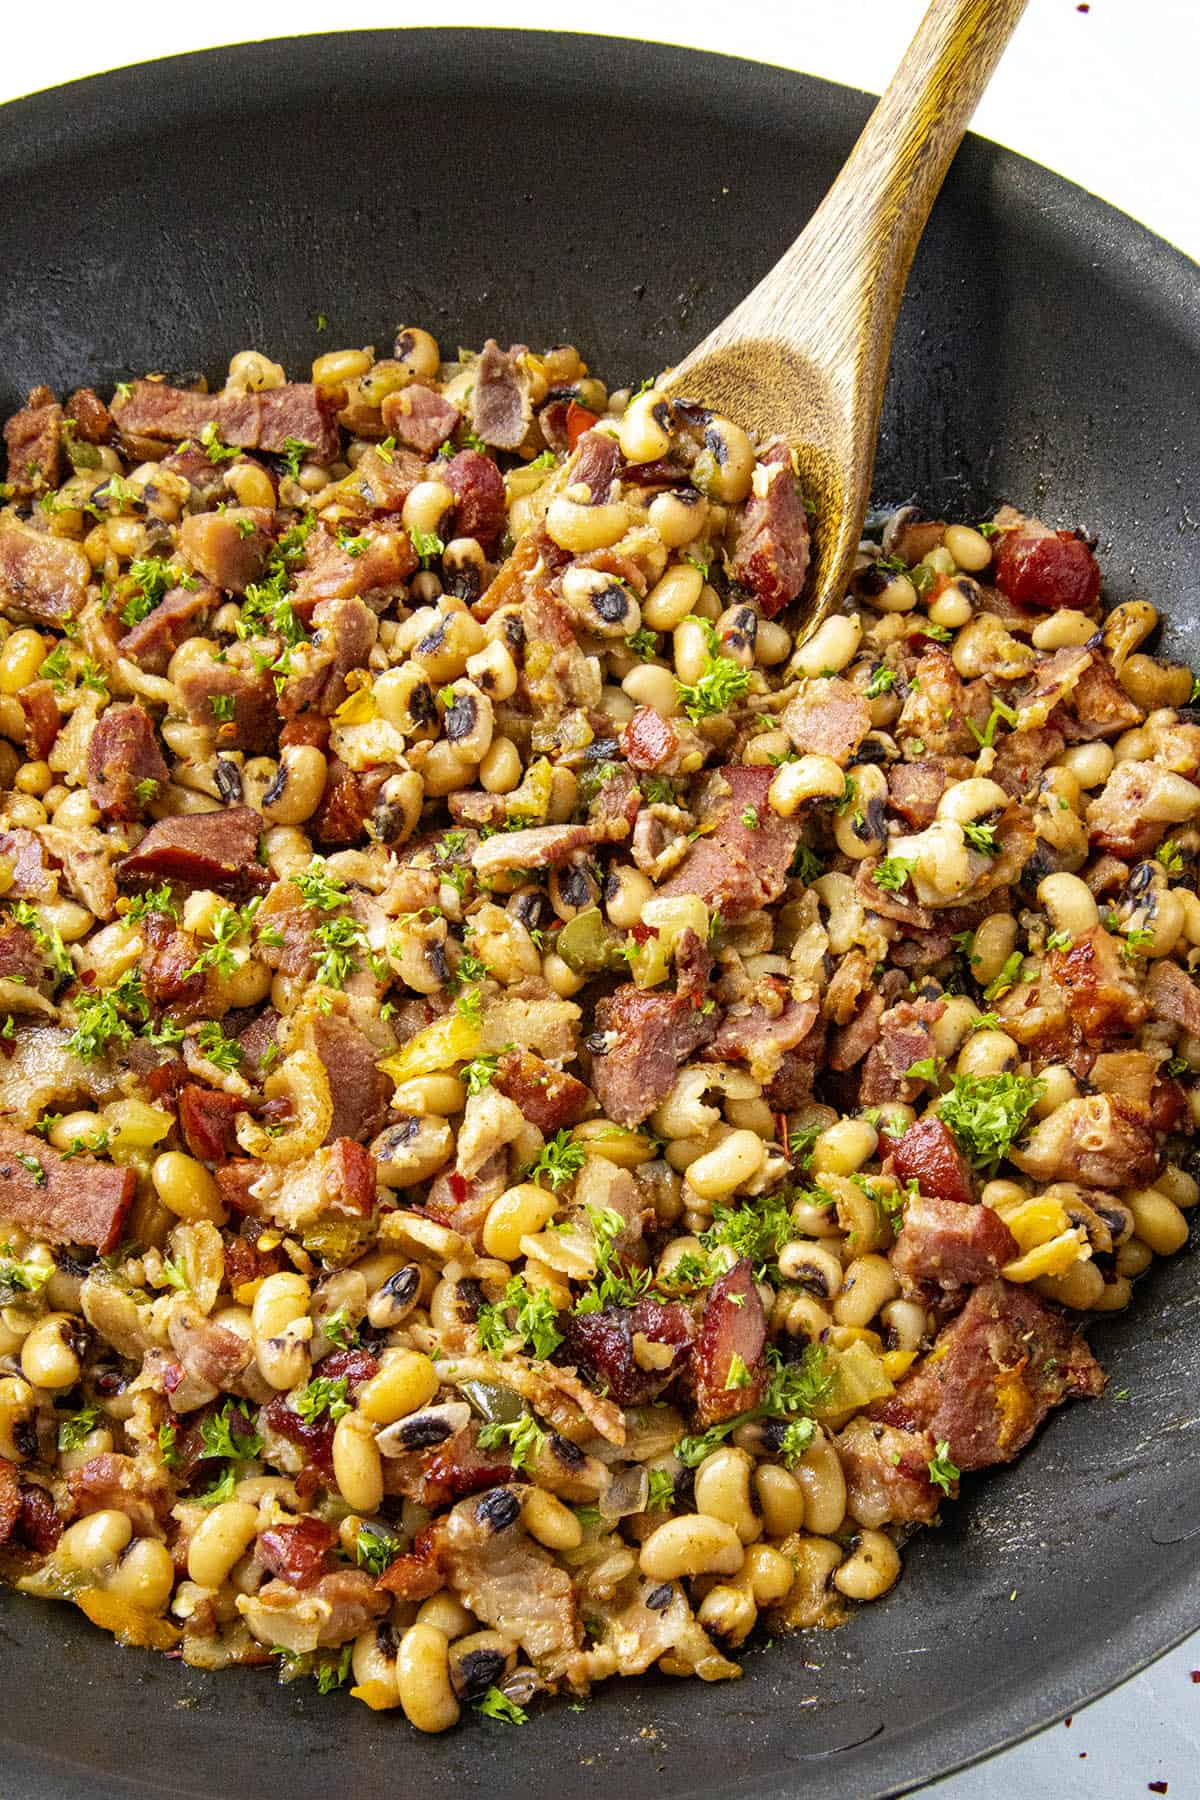 Taking a scoop of Black Eyed Peas from the pan